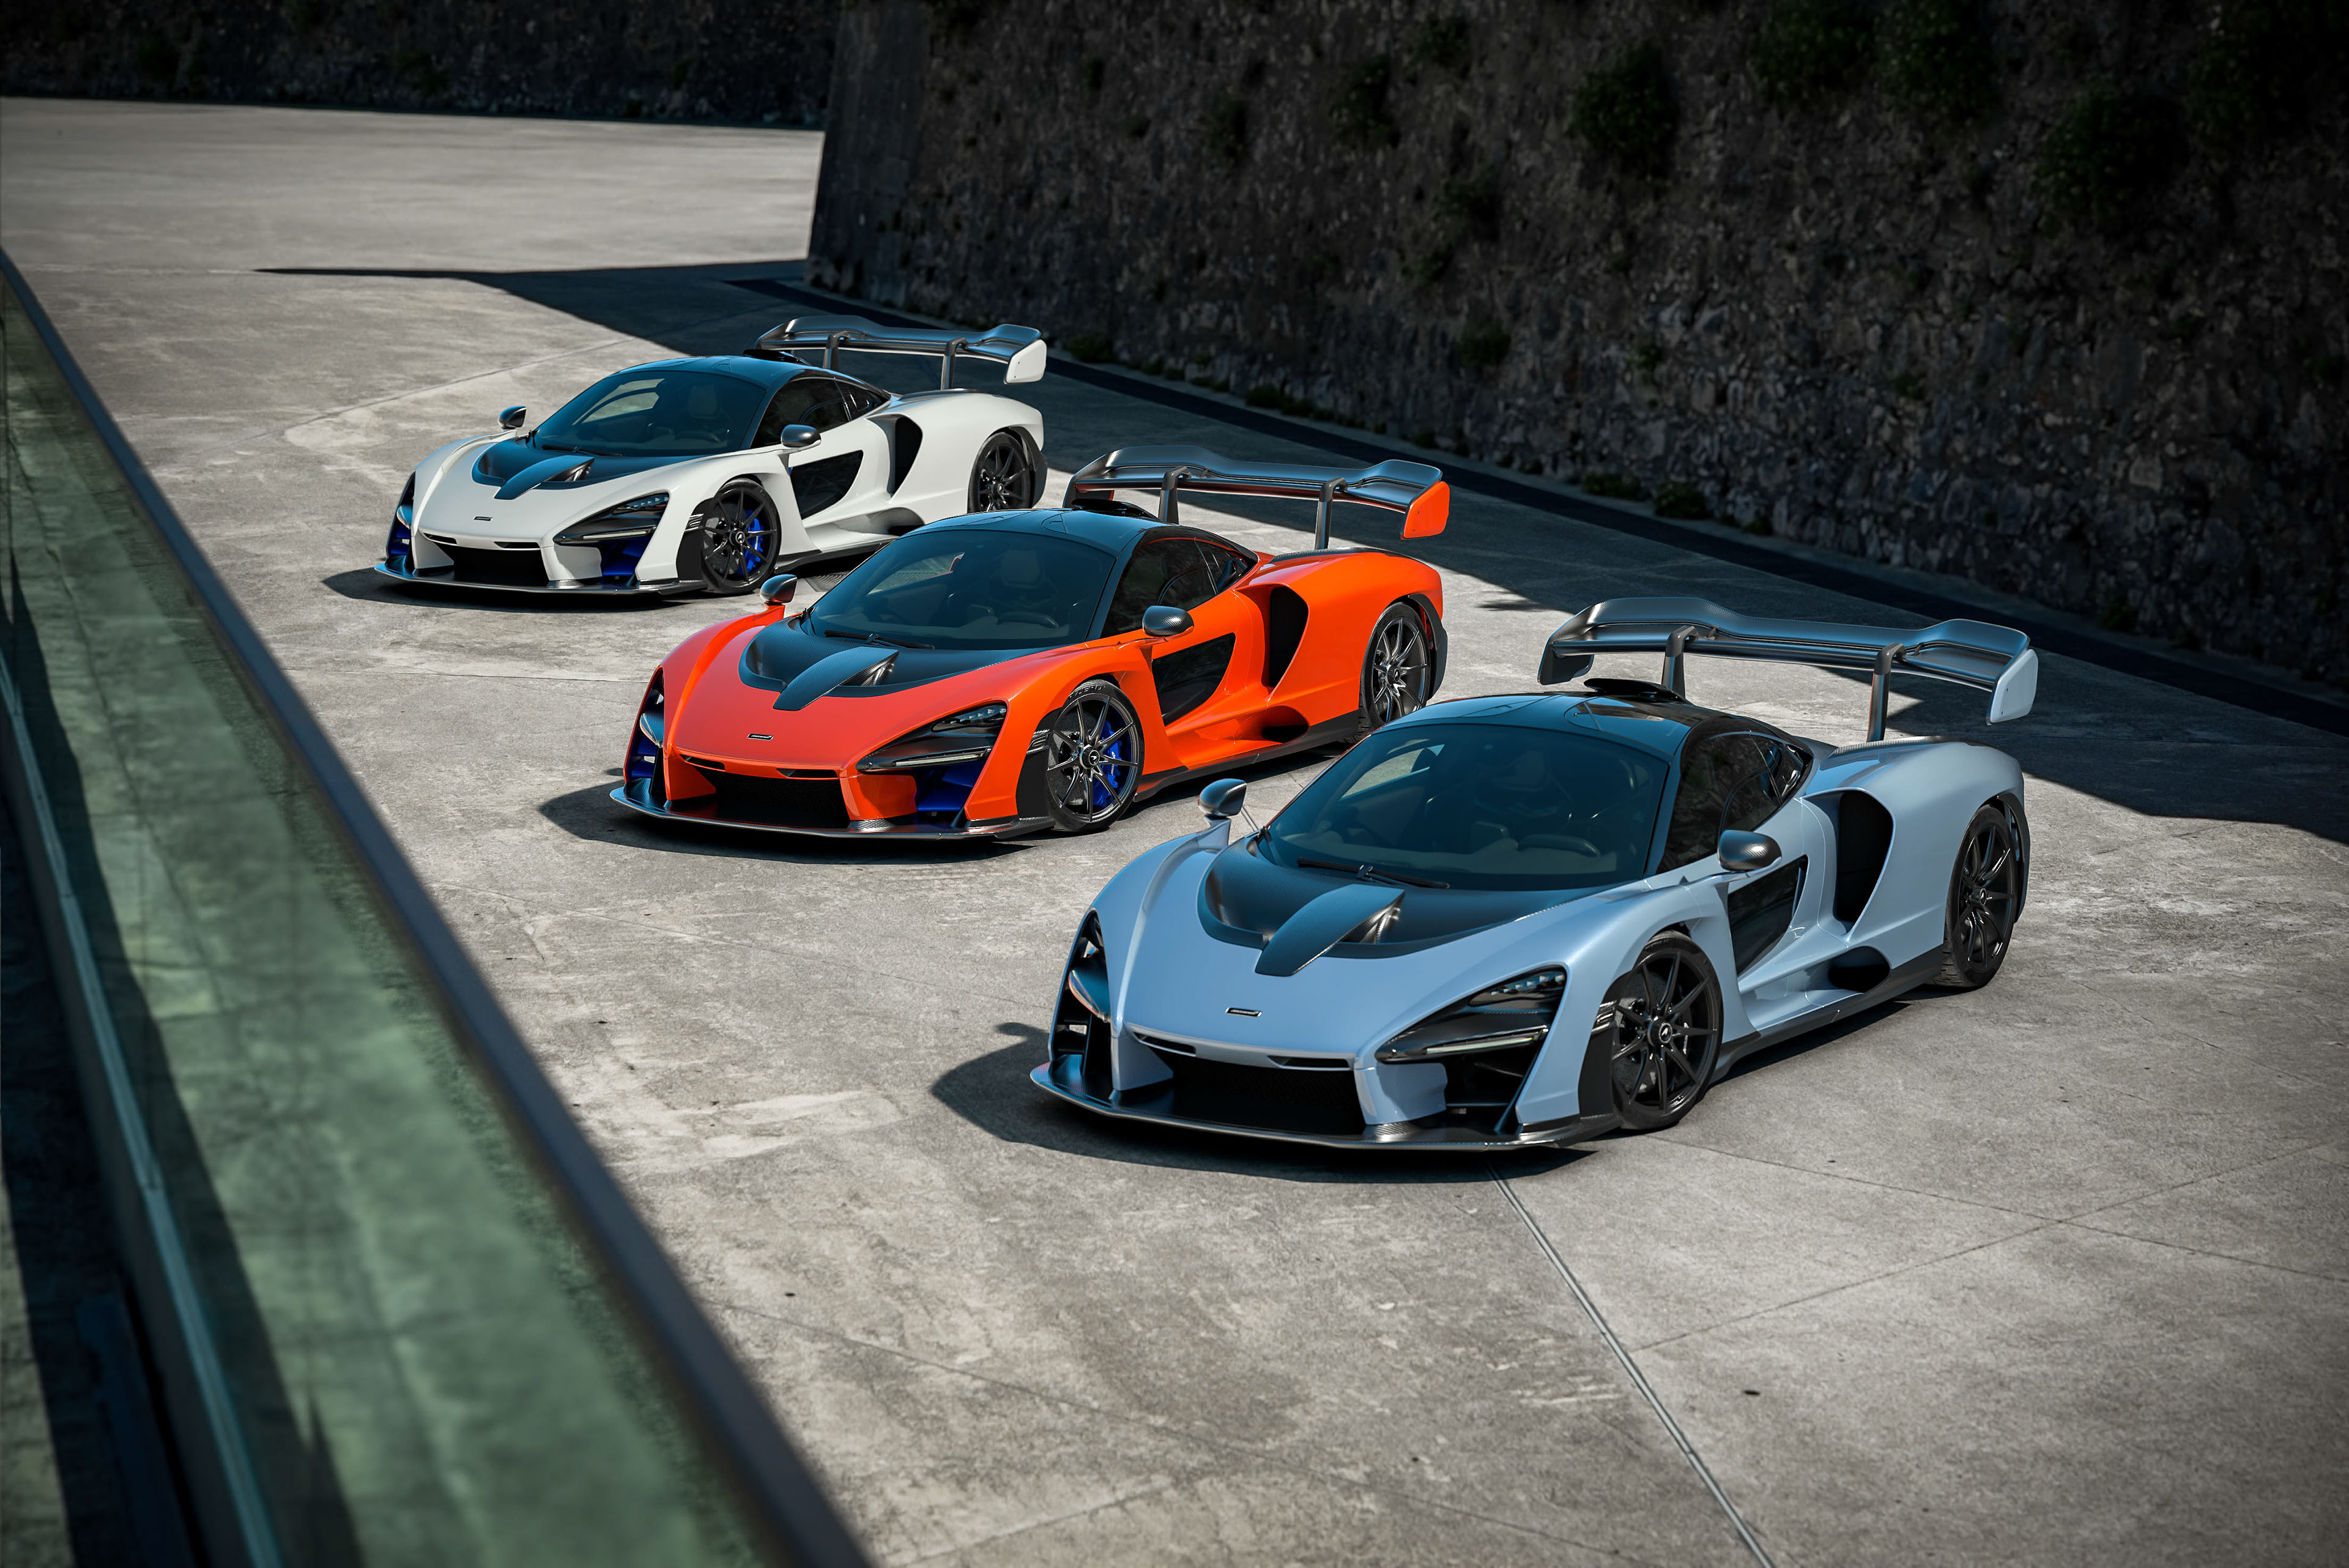 Wallpaper Mclaren Senna P15 2019 4k Automotive Cars: Mclaren Senna New 2019, HD Cars, 4k Wallpapers, Images